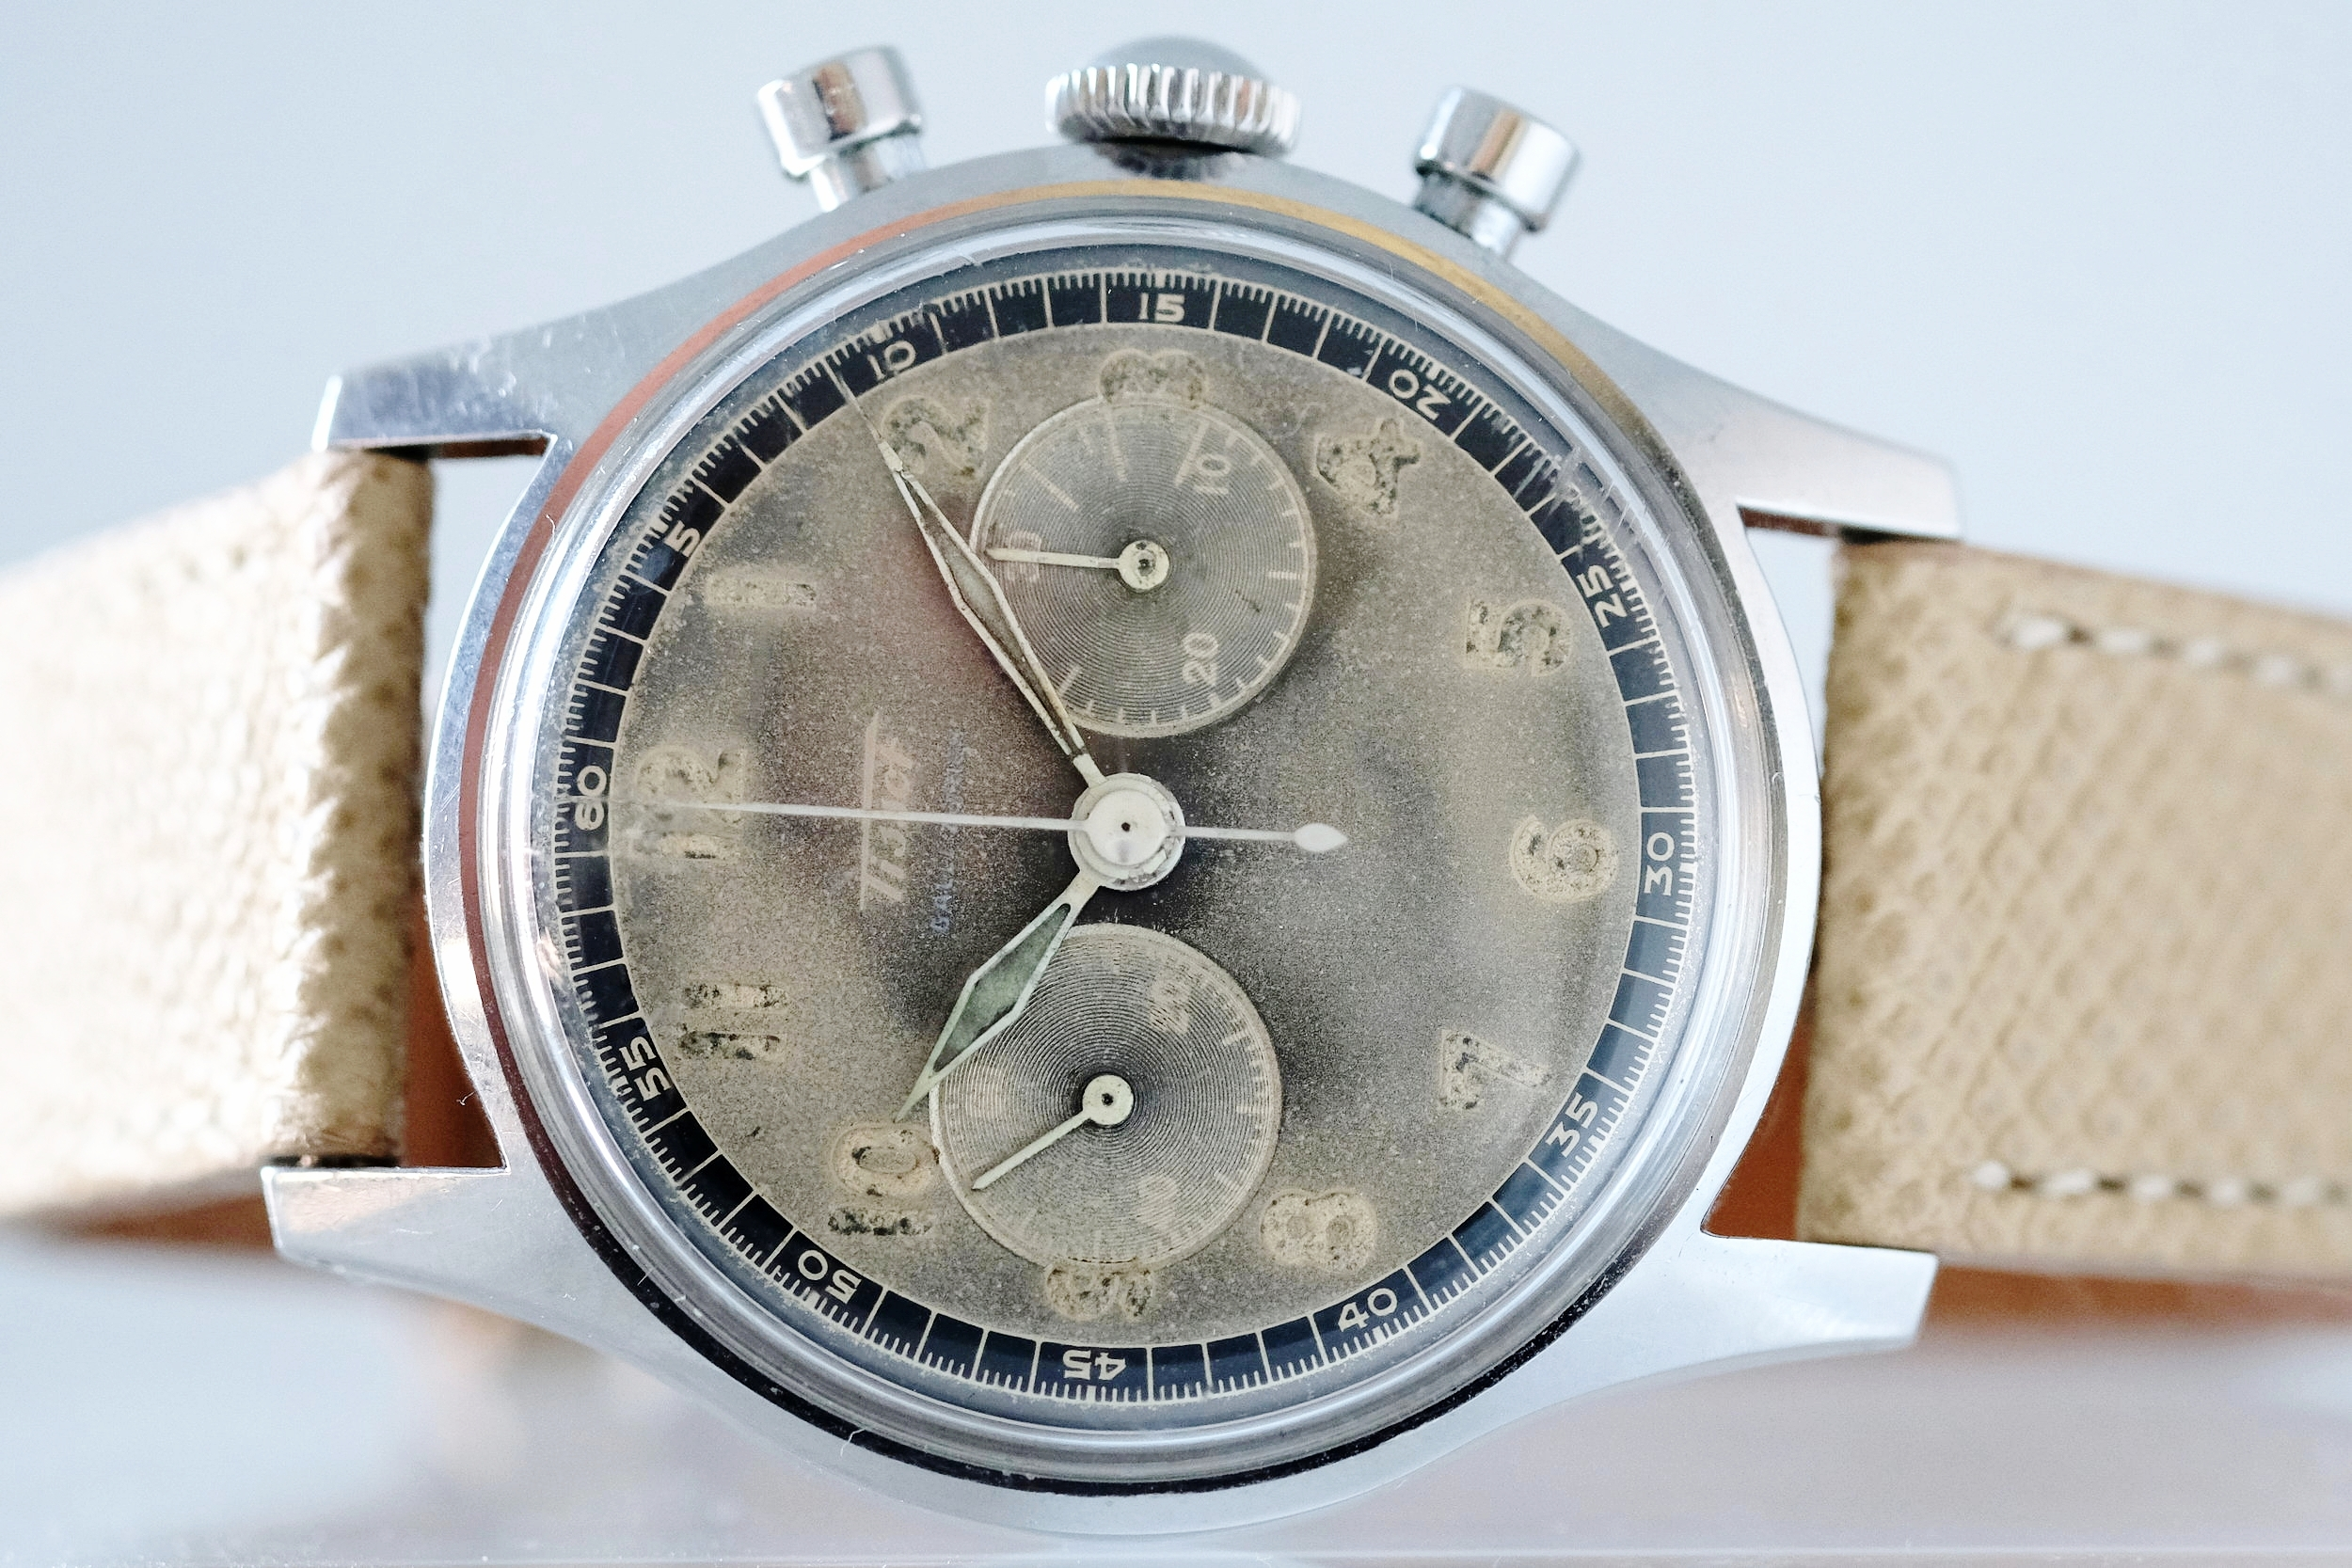 Tissot Radium Chronograph for Galli Zürich  Price: $2,995